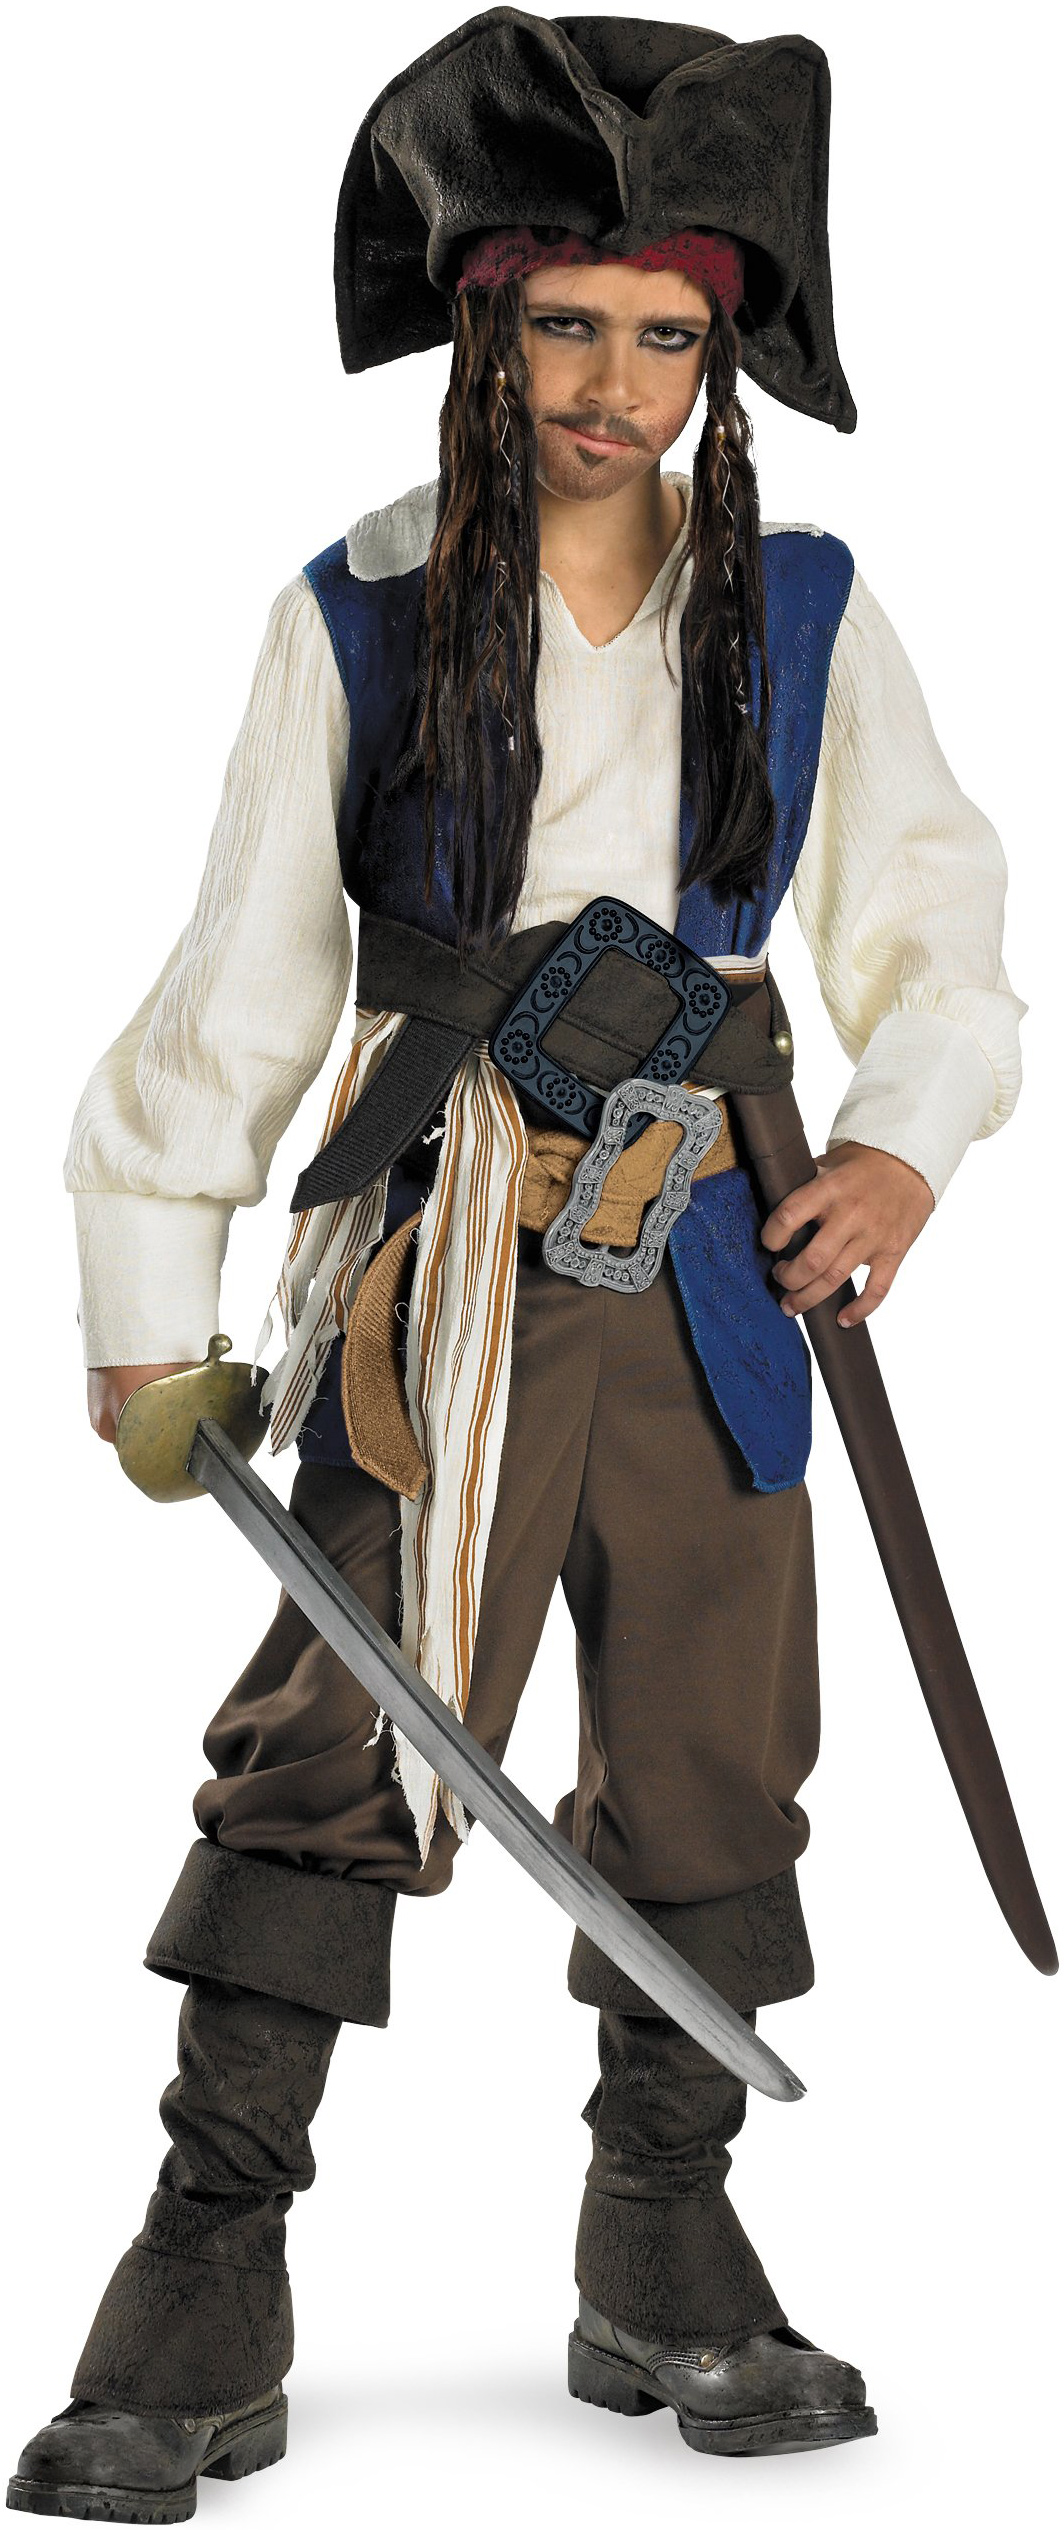 Jack Sparrow Pirate Costume Boys